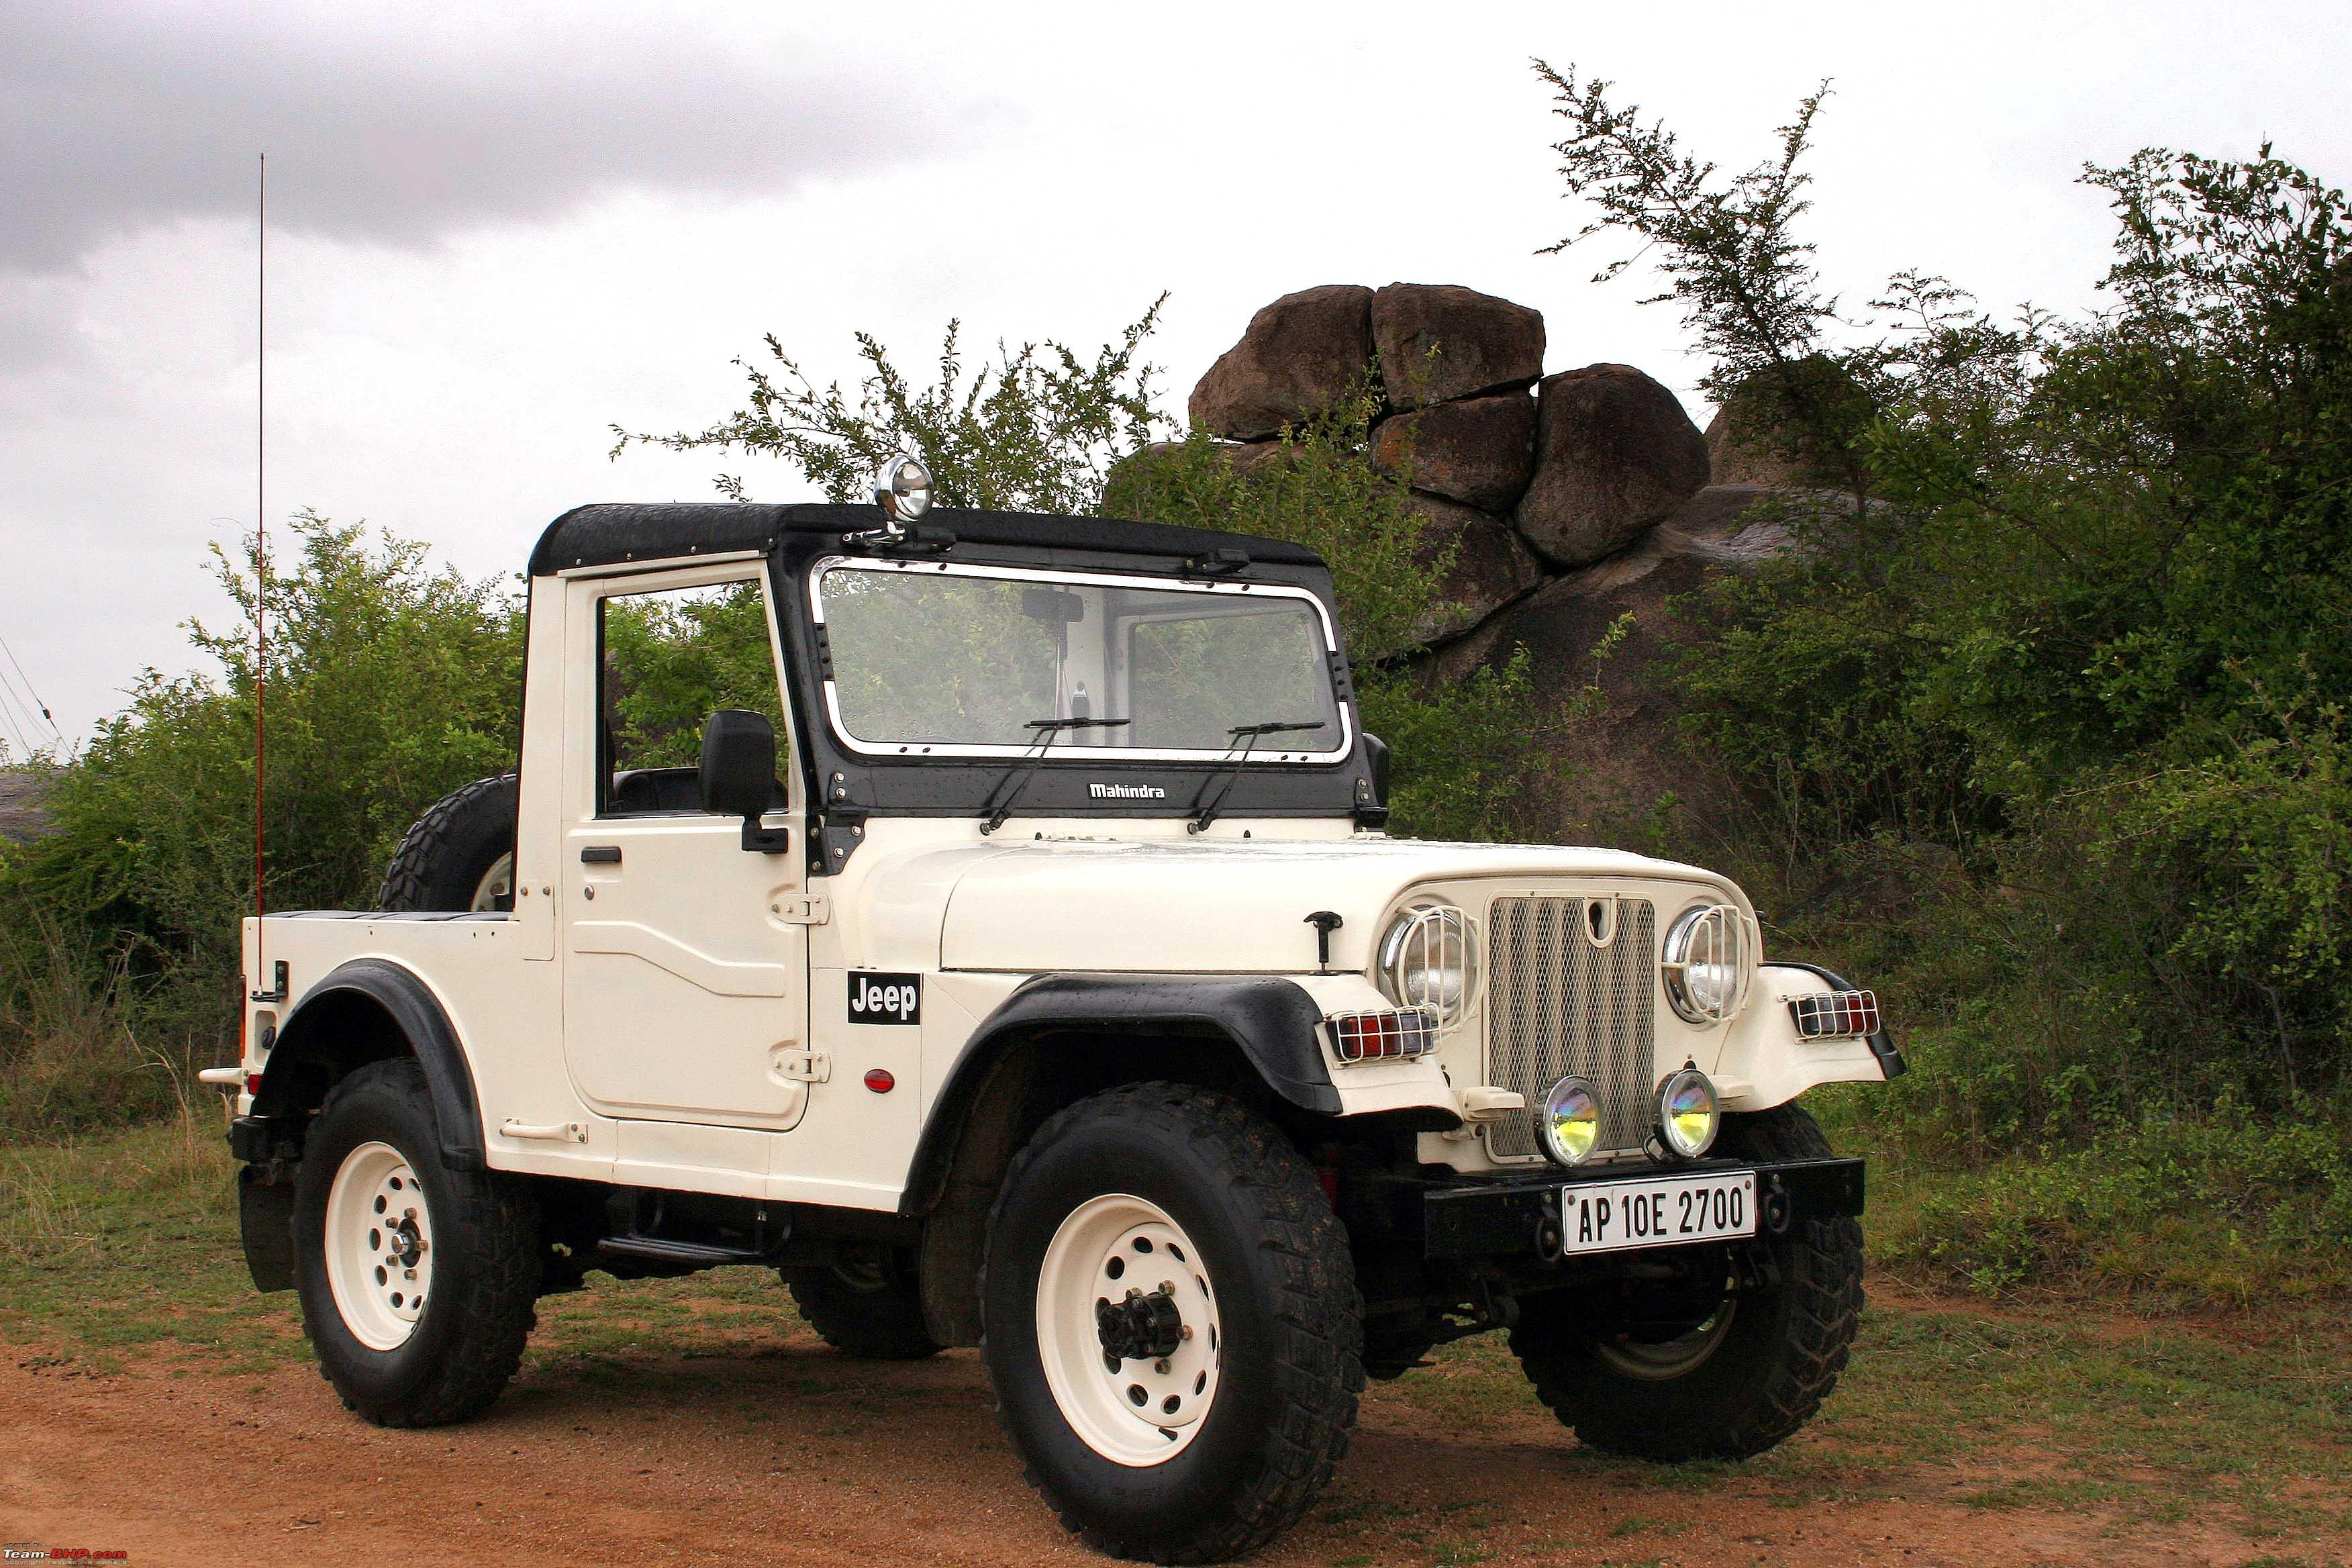 Mahindra Mm 540 550 Technical Specifications And Fuel Economy